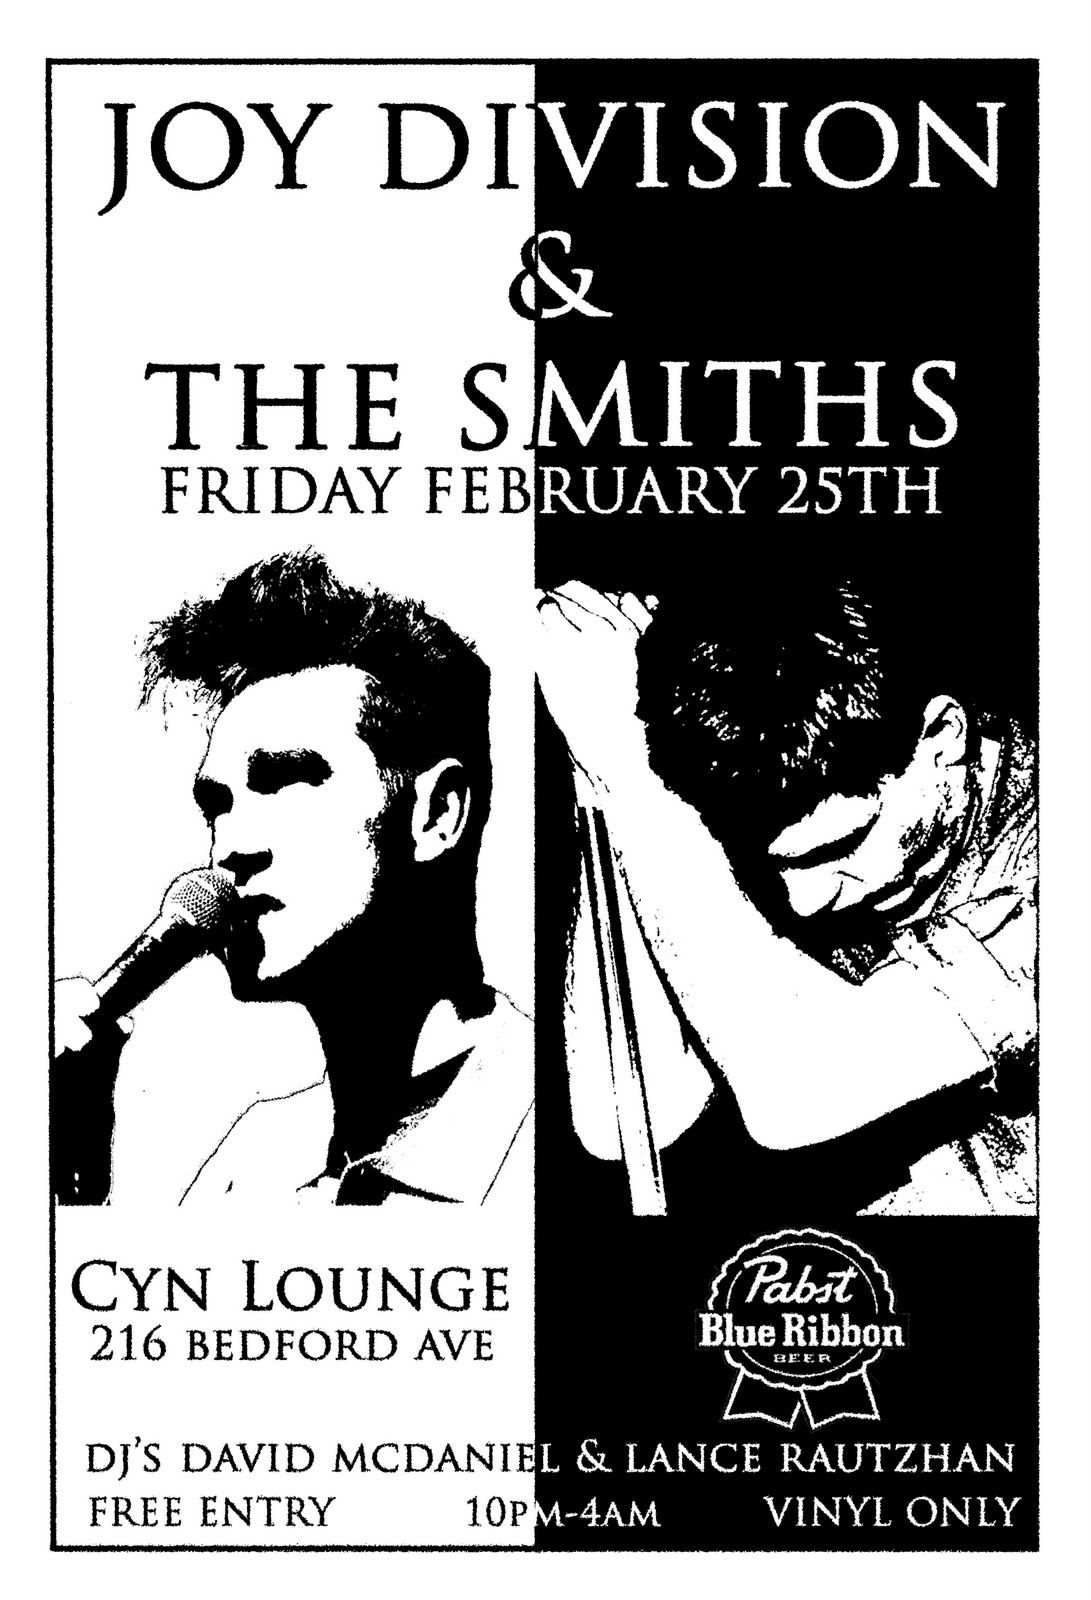 Breakfast Time Joy Division The Smiths Nite Cyn Lounge Free Pbr Punk Poster Joy Division Music Poster